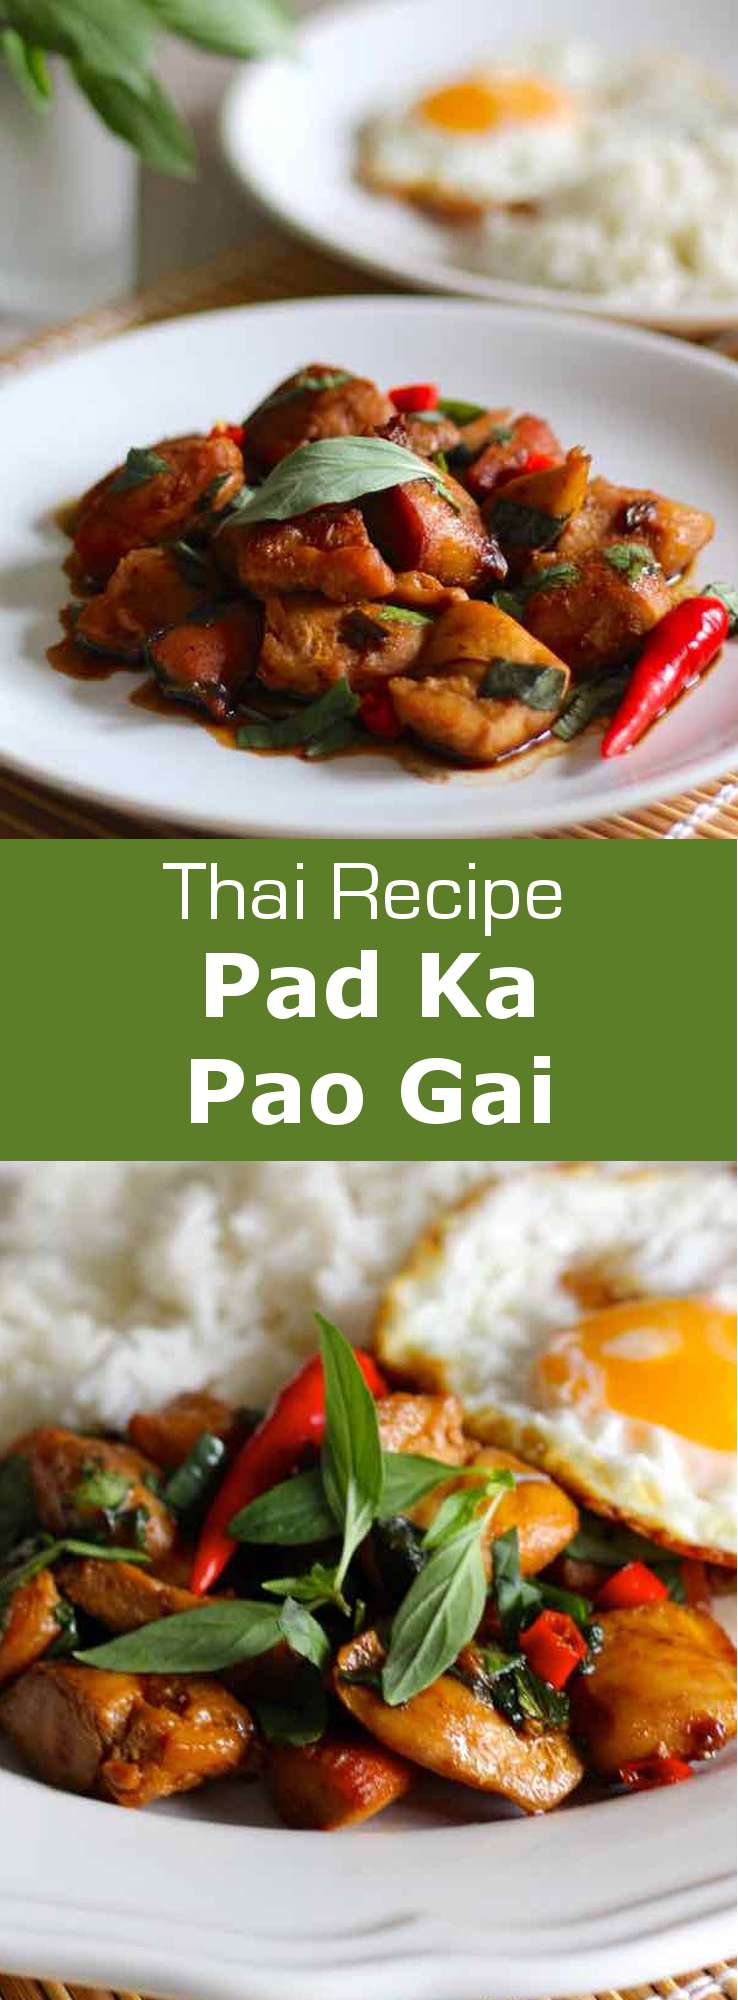 Pad kra pao gai is a delicious traditional Thai dish consisting of chicken perfumed with sacred basil and chili. #Thai #196flavors